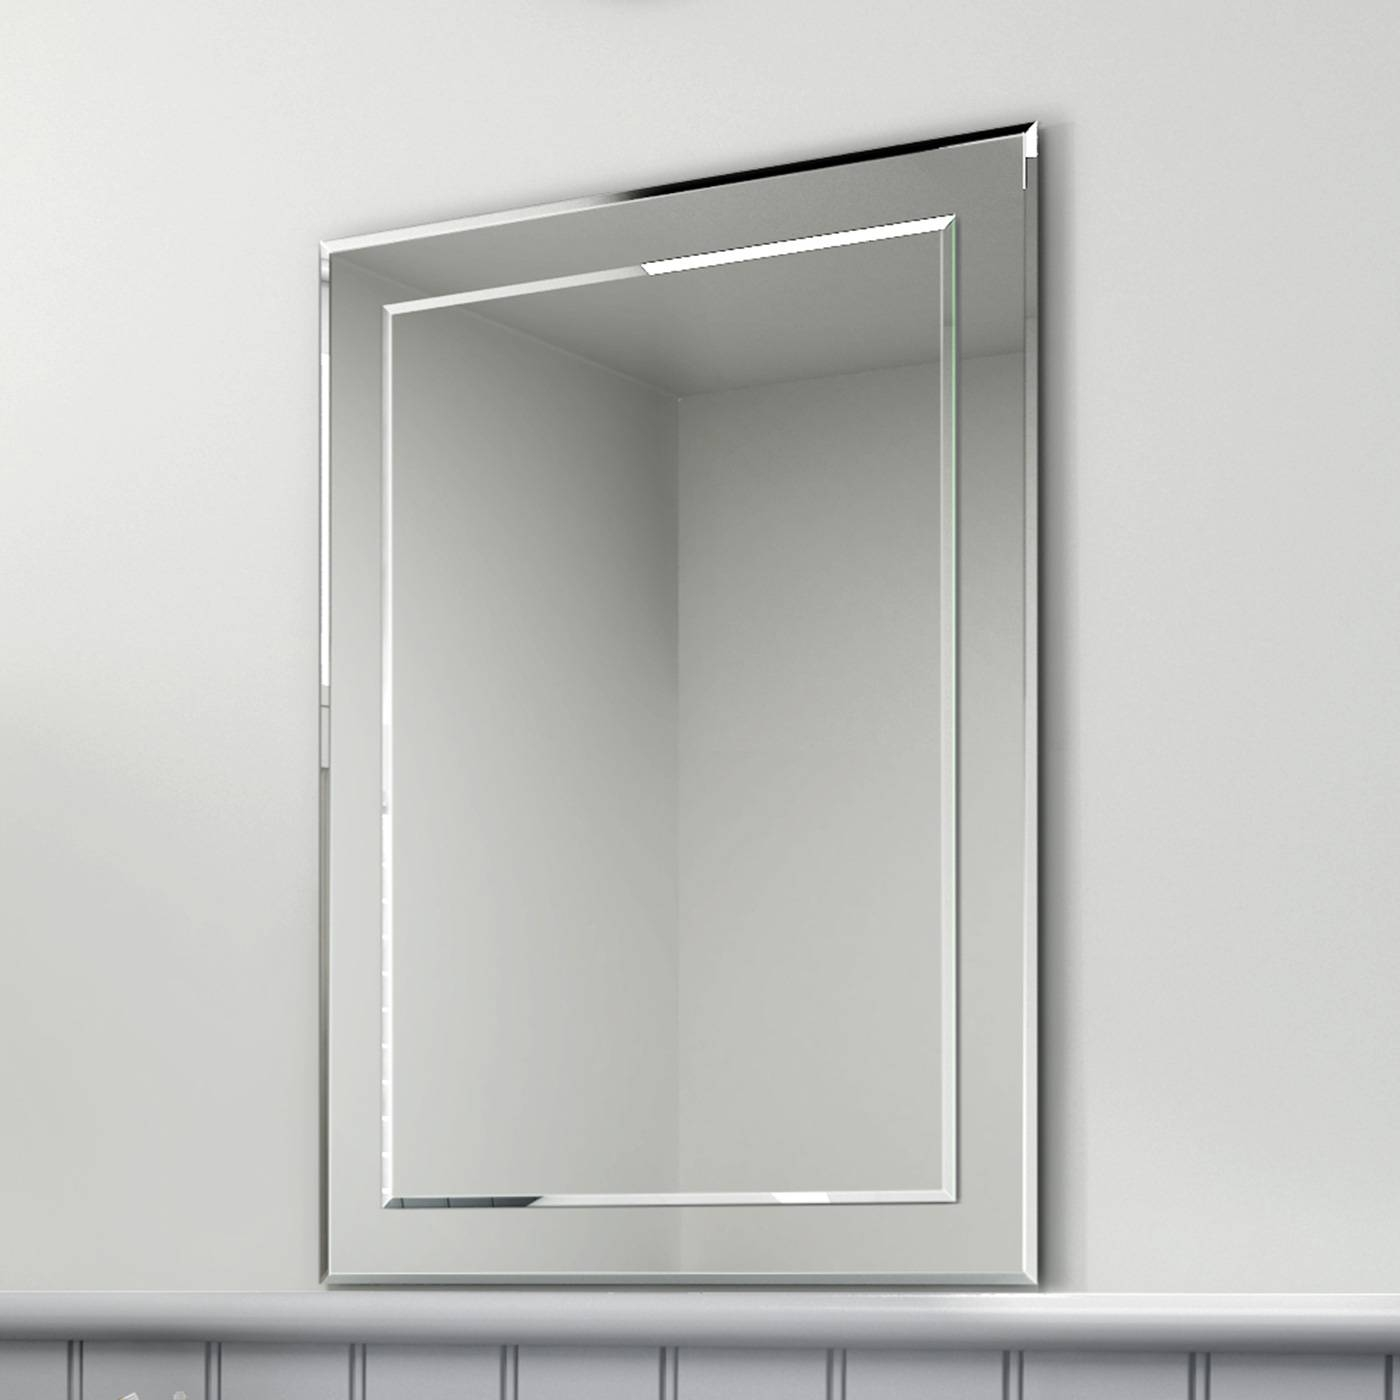 500 X 700 Modern Bevelled Edge Silver Bathroom Wall Mirror | Ebay Intended For Bevel Mirrors (Photo 3 of 15)